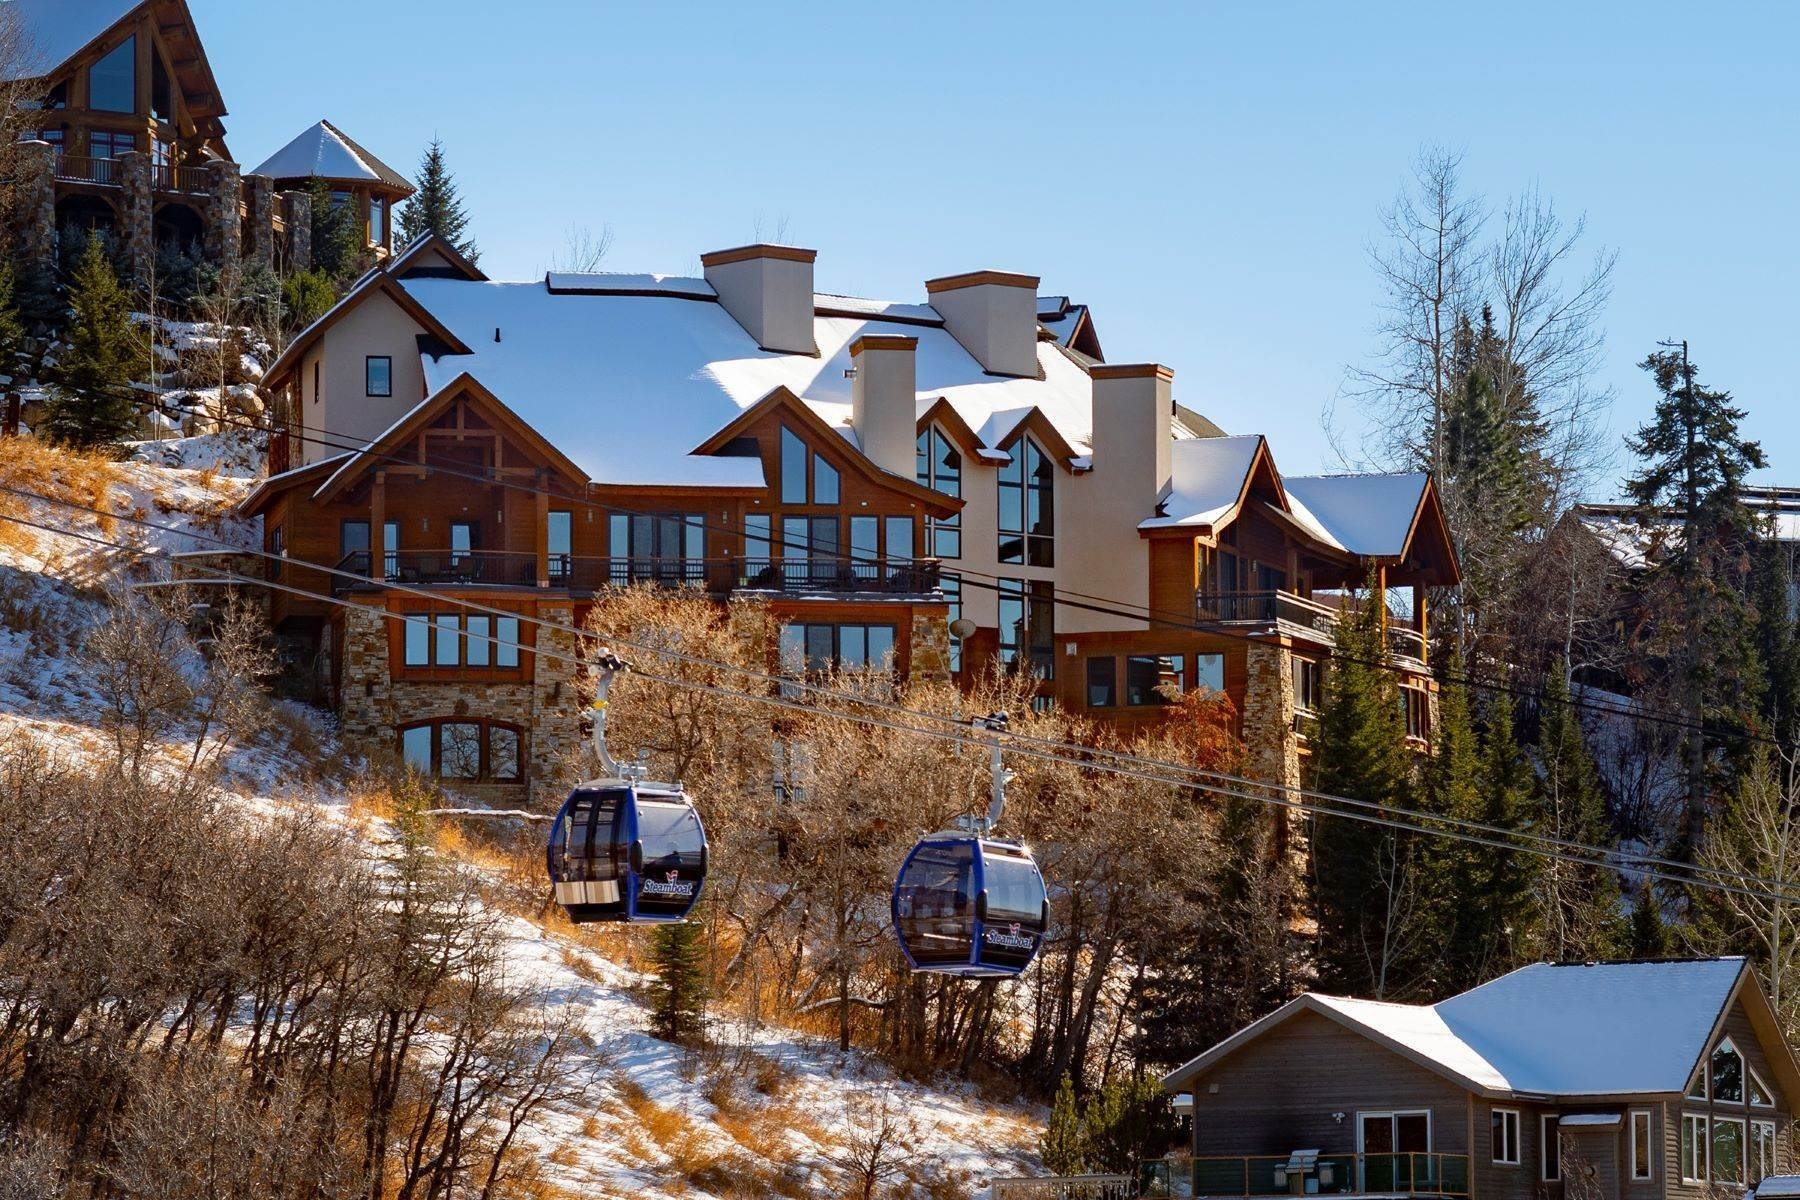 Single Family Homes for Sale at Luxury Mountain Retreat Falconhead North 2605 Ski Trail Lane Steamboat Springs, Colorado 80587 United States